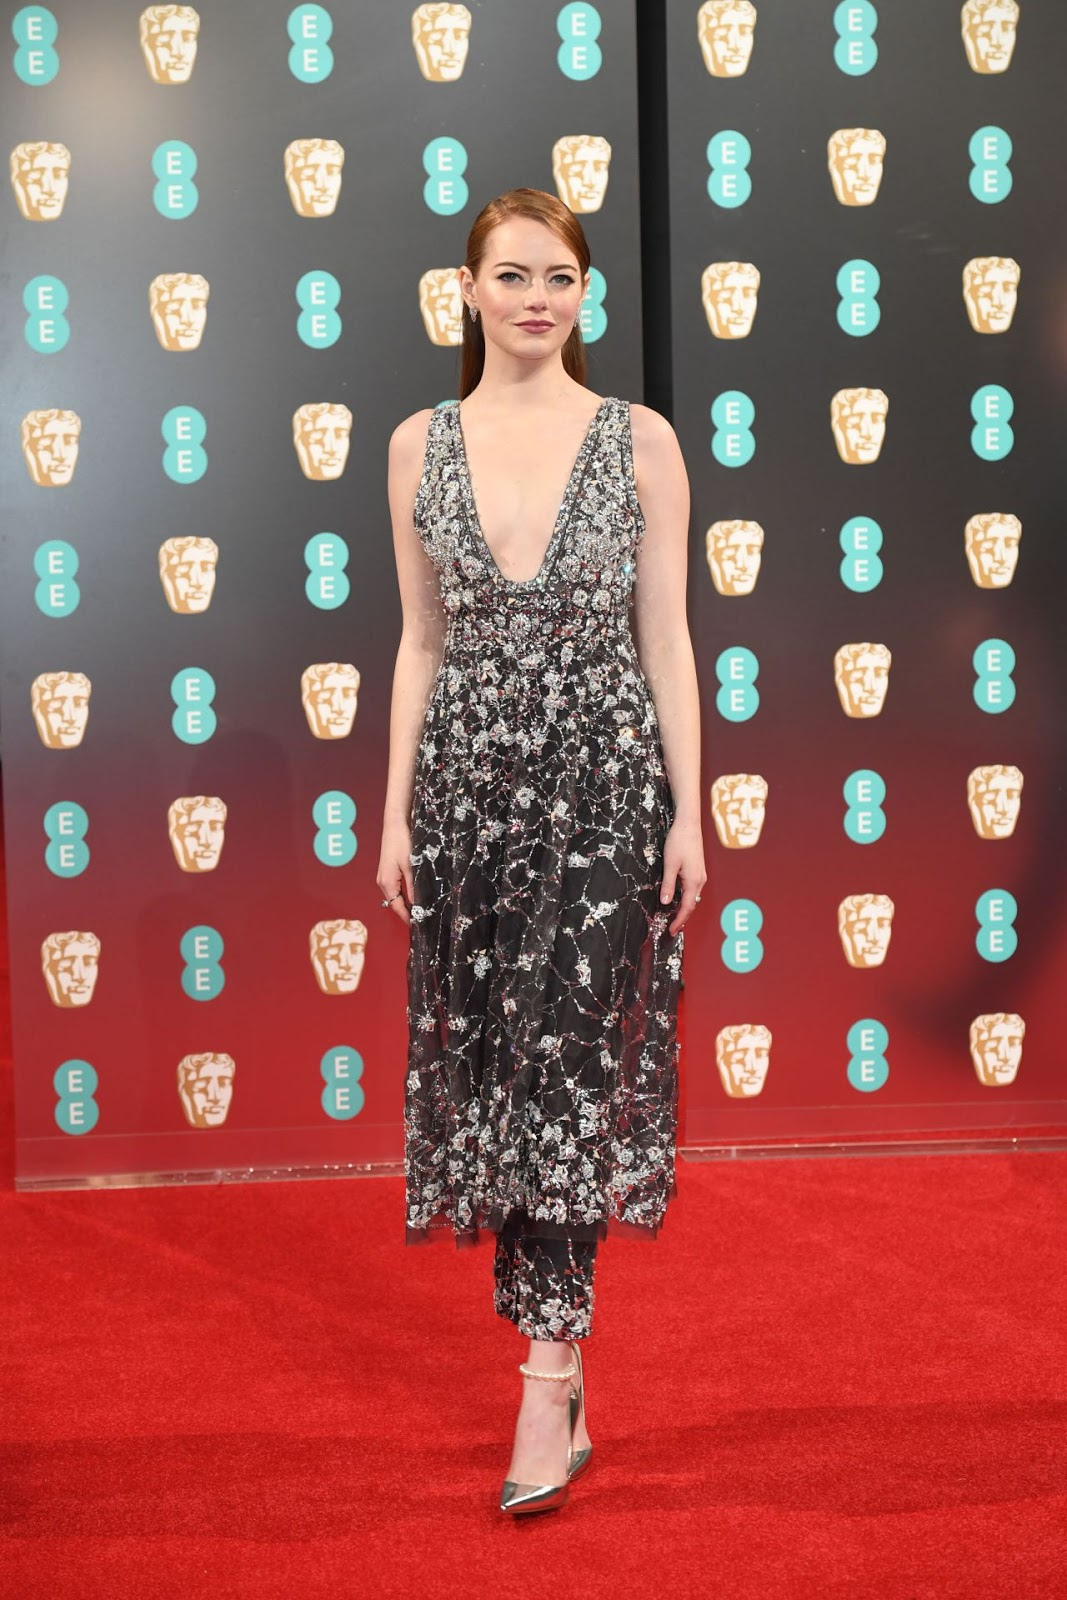 Emma Stone on Red Carpet at BAFTA Awards in London, UK